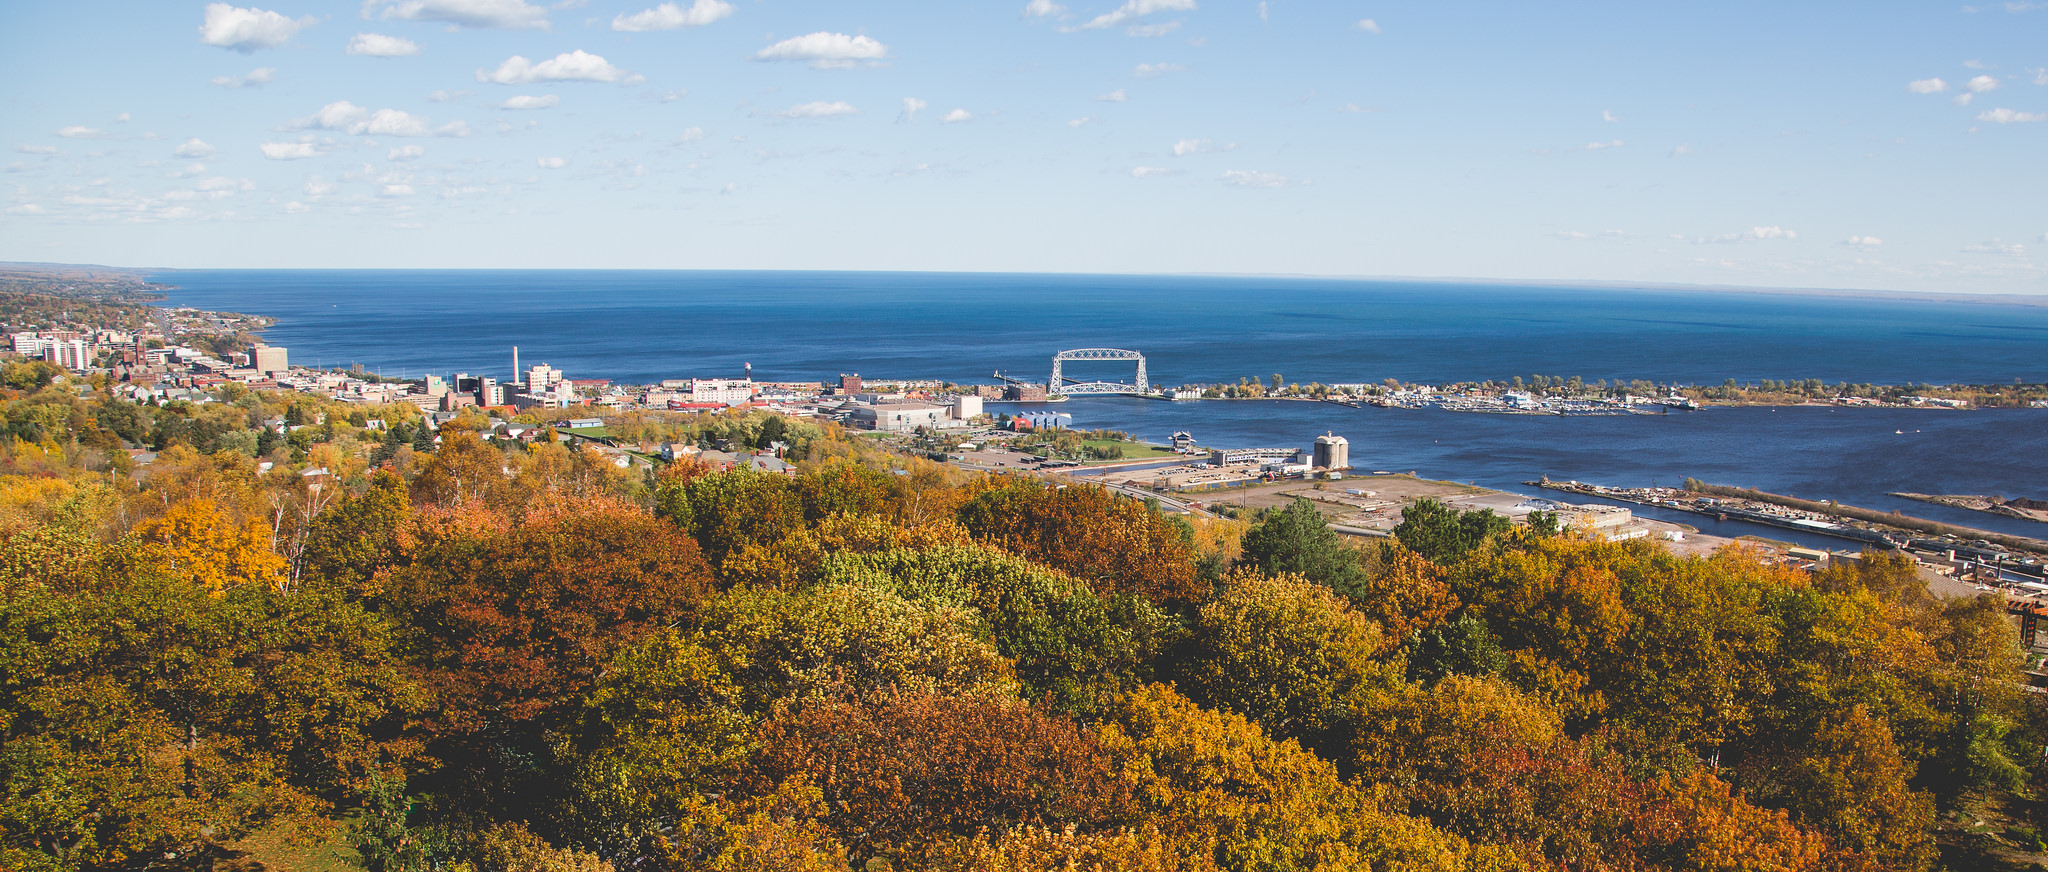 The view from Enger Tower: autumn colors, the Duluth Lift Bridge, the Duluth skyline, and Lake Superior